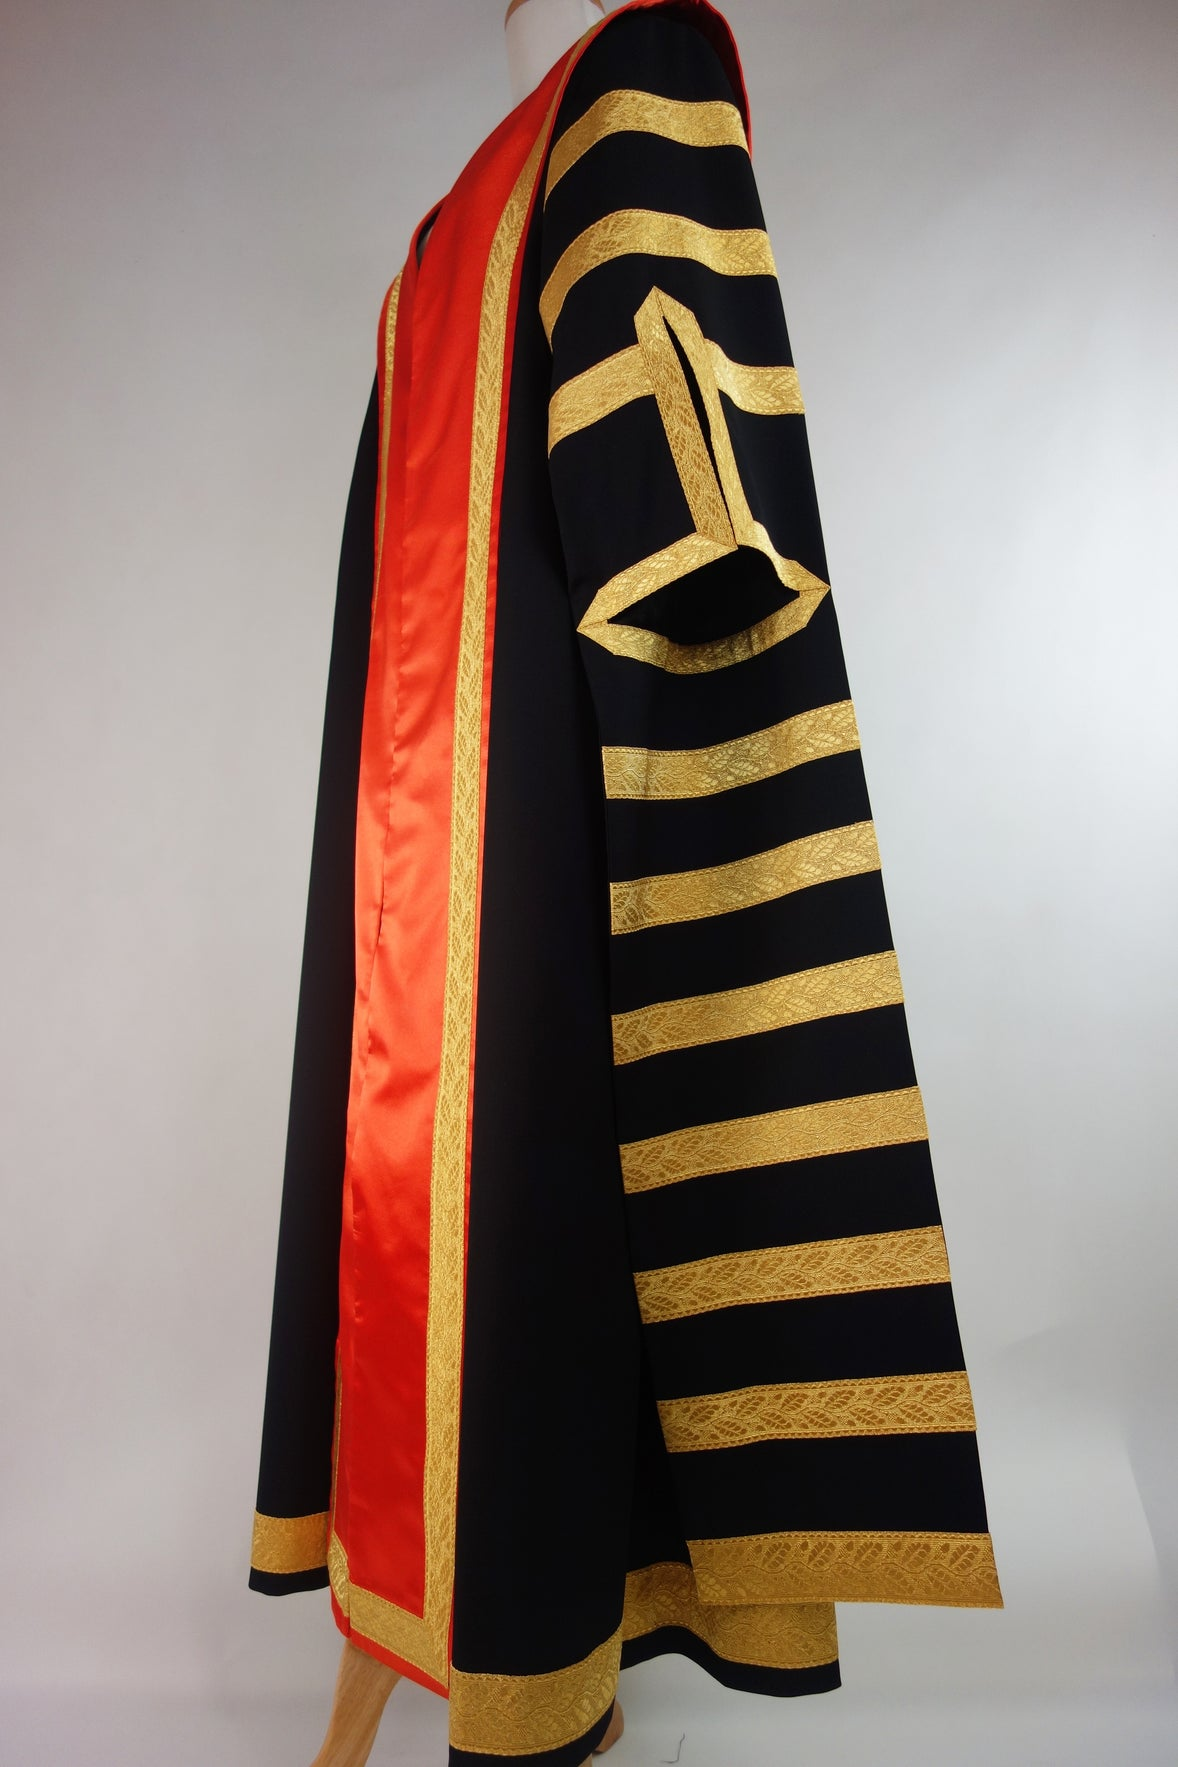 Torrens University Chancellor Robe